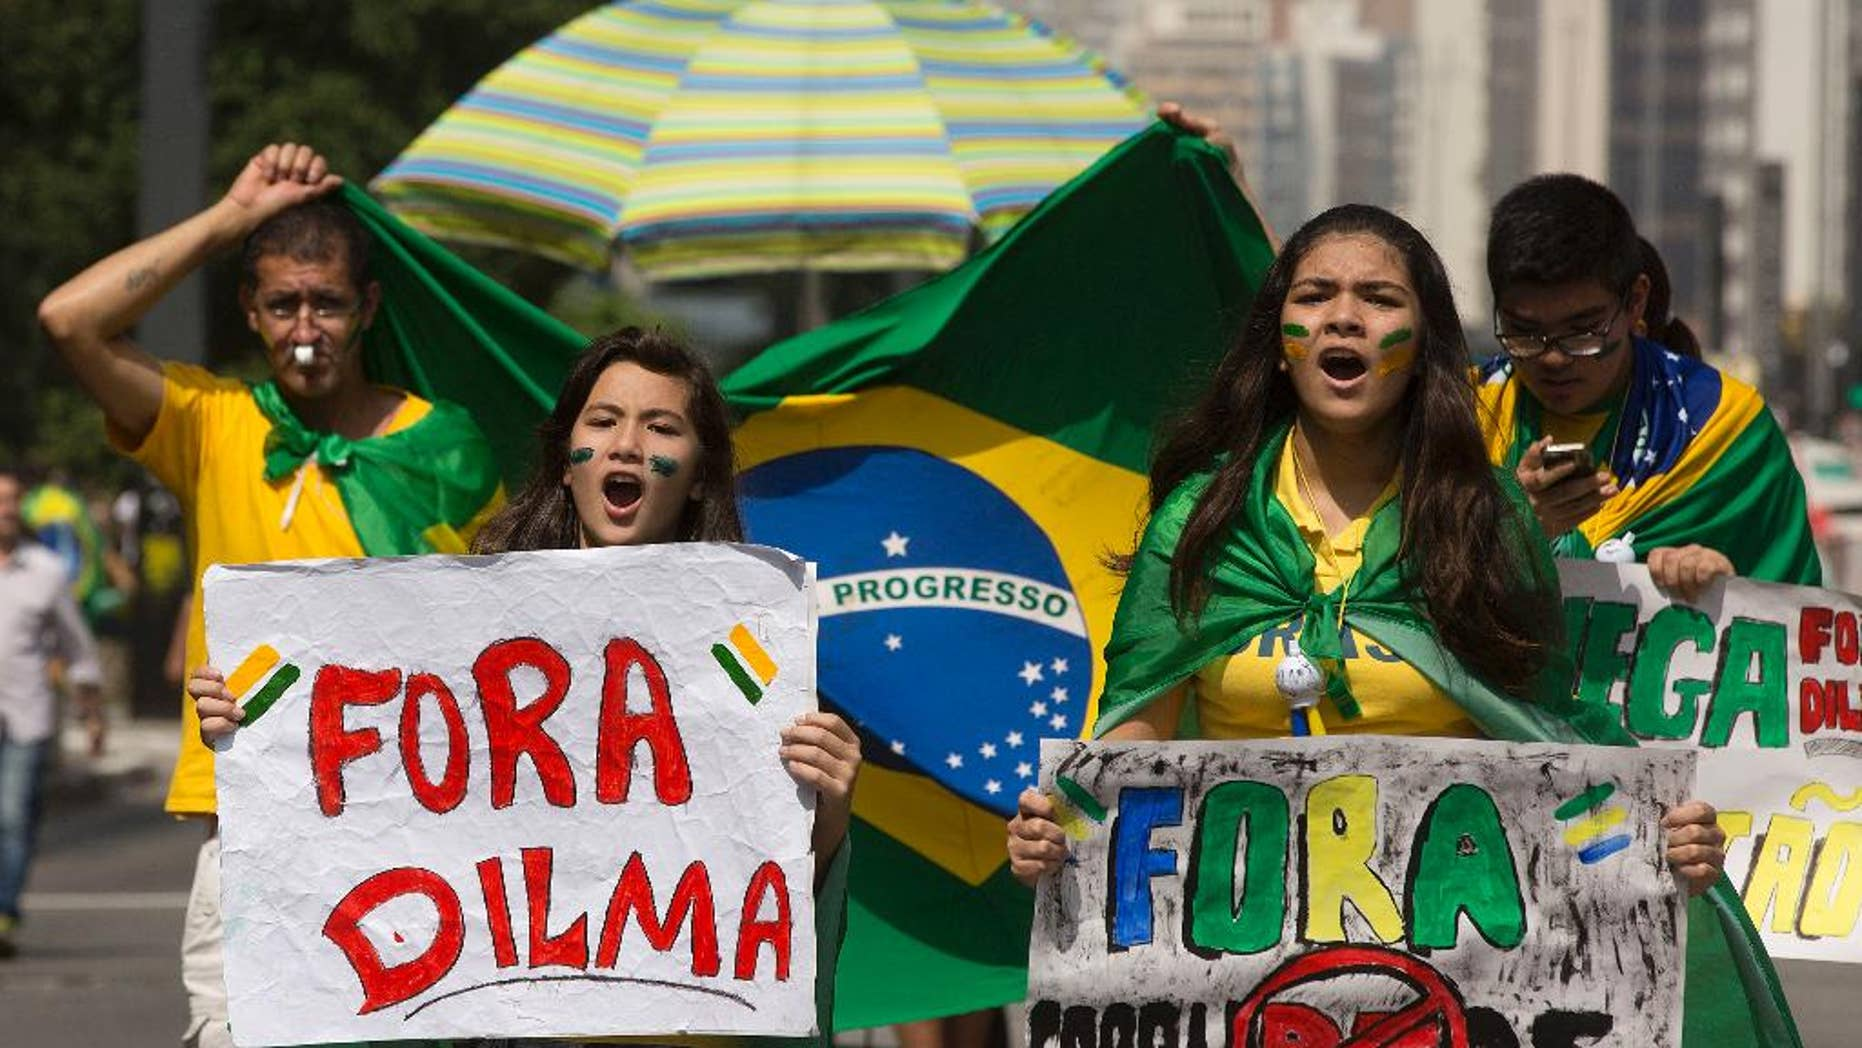 "Demonstrators shout anti-government slogans as they march holding signs that reads in Portuguese ""Dilma Out"" and ""Corrupt Out"", during a protest demanding the impeachment of Brazil's President Dilma Rousseff in Sao Paulo, Brazil, Sunday, April 12, 2015. It was the second such day of protests in less than a month and comes as polls show Rousseff with historically low approval ratings amid a corruption scandal at the state-run oil company, Petrobras, as well as a spluttering economy, a rapidly depreciating currency and political infighting. (AP Photo/Andre Penner)"